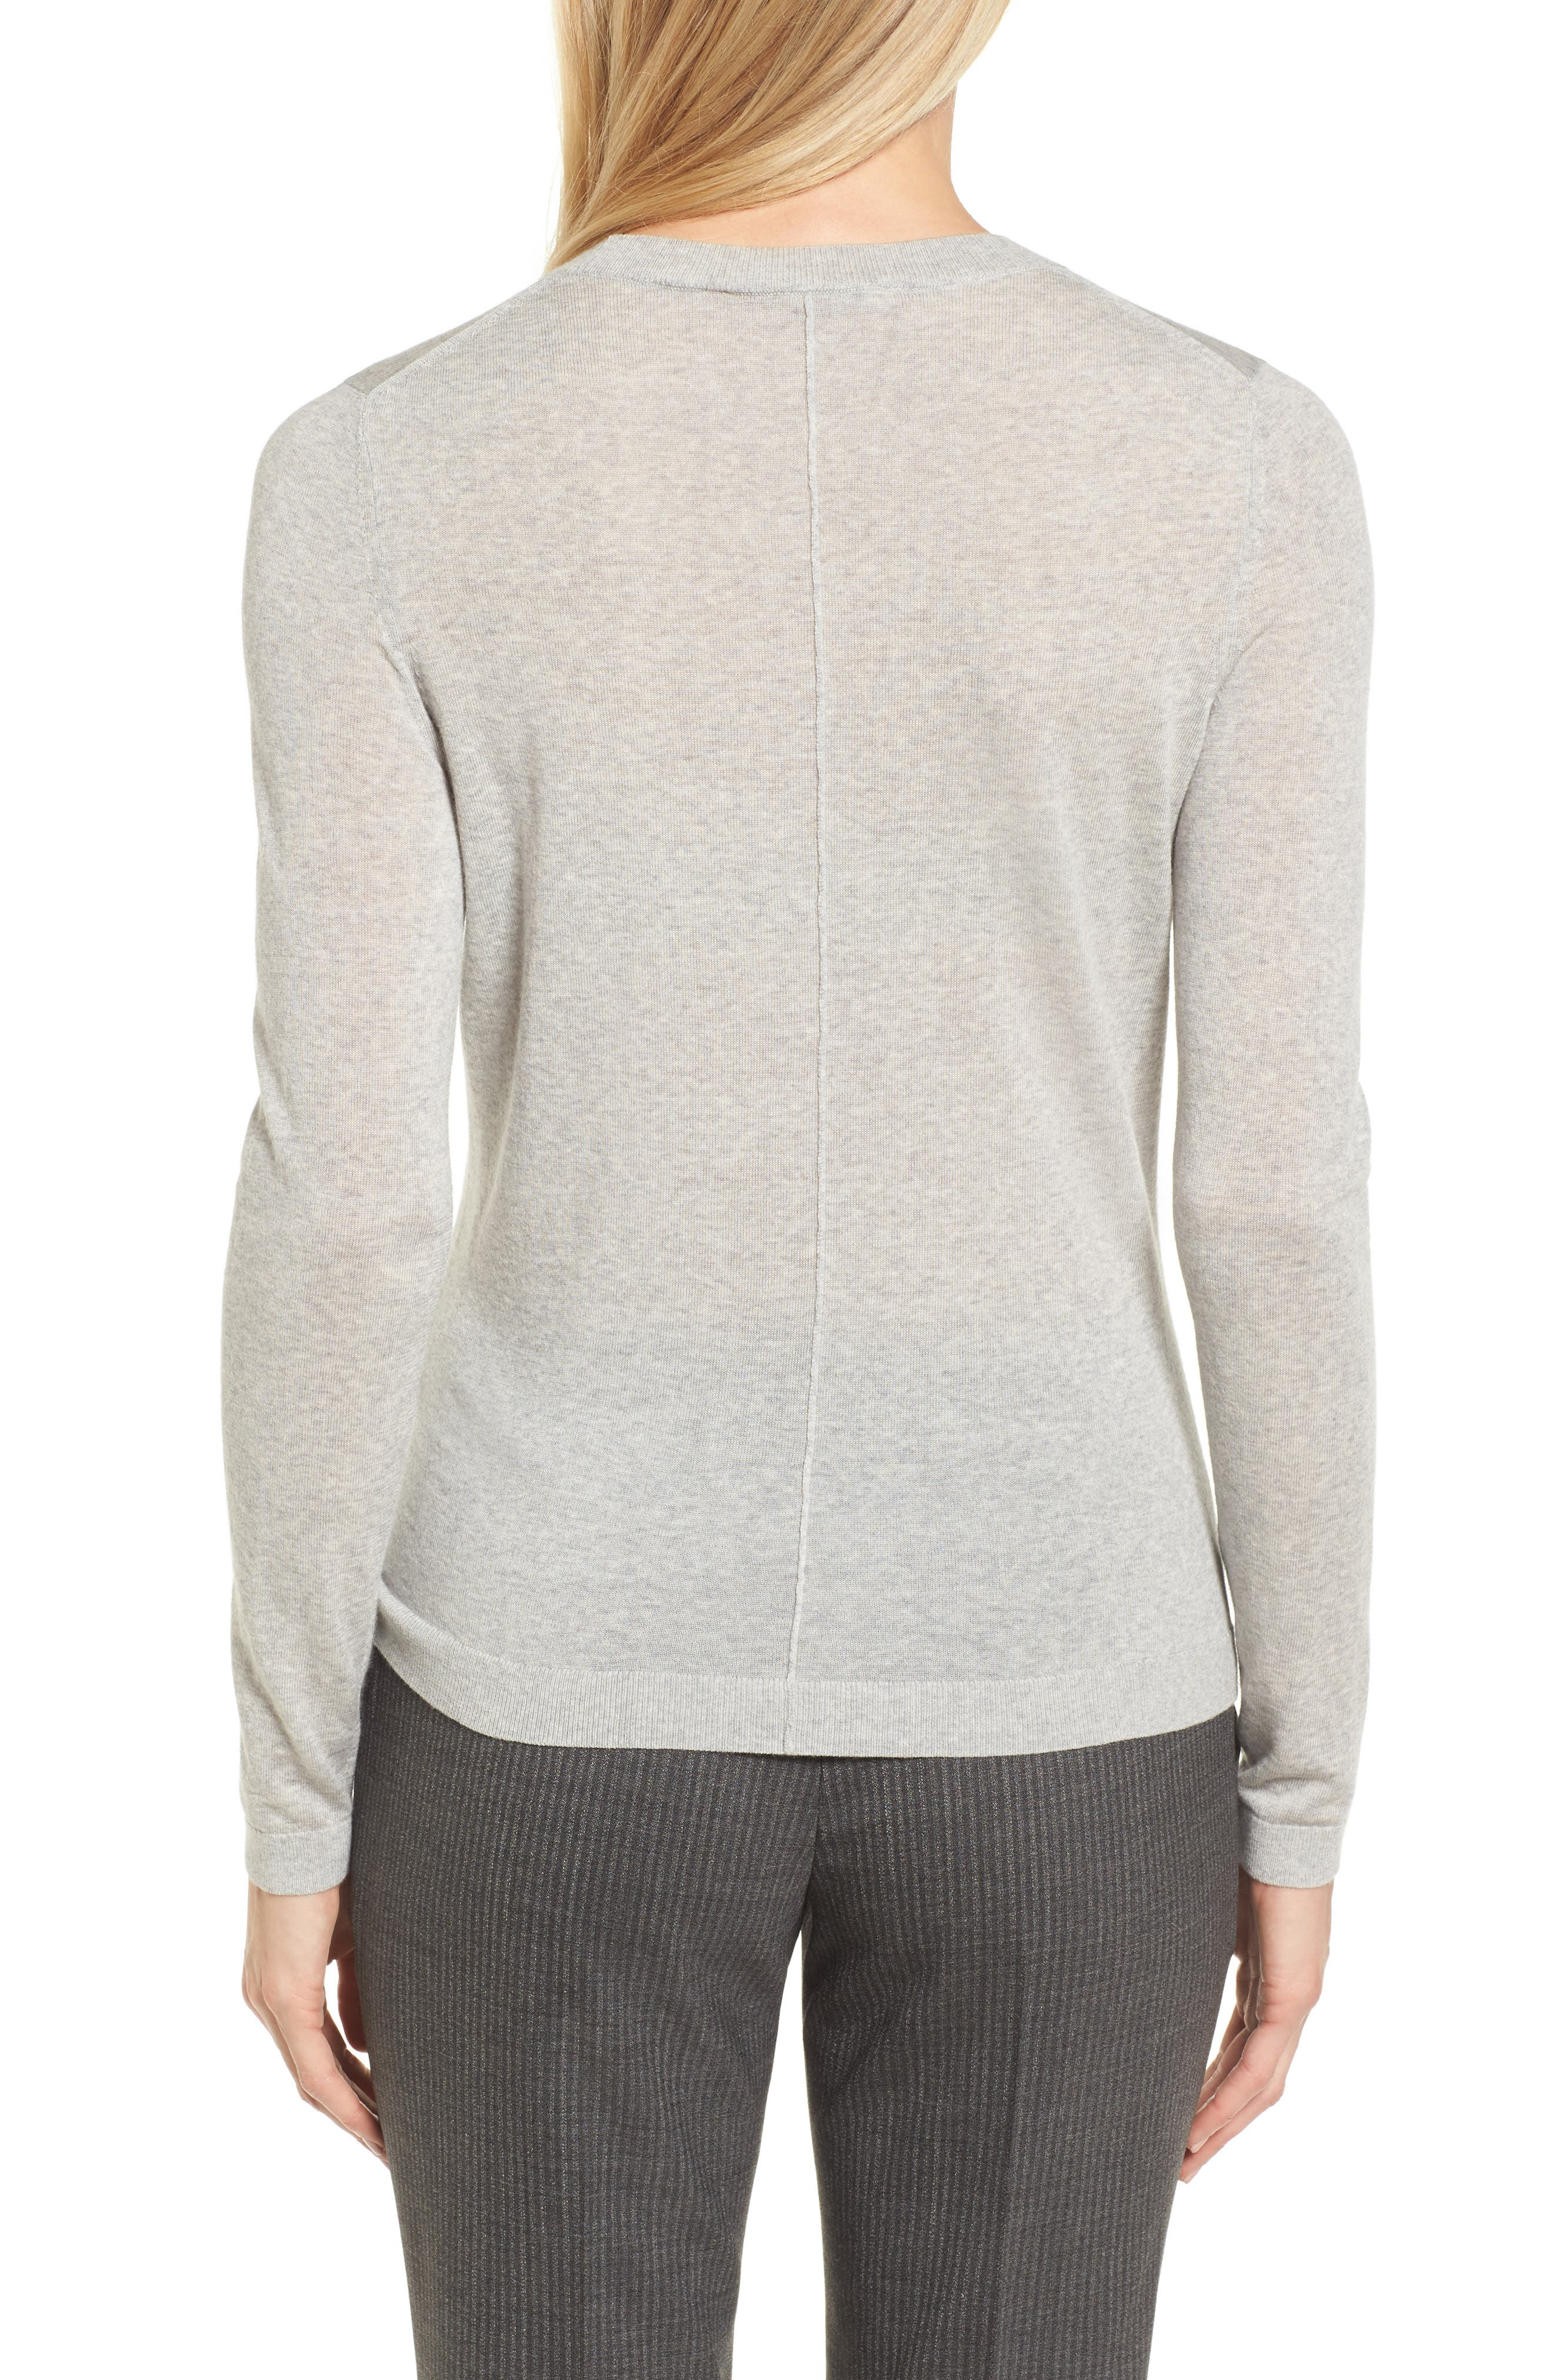 Fayme Wool Crewneck Sweater,                             Alternate thumbnail 2, color,                             057